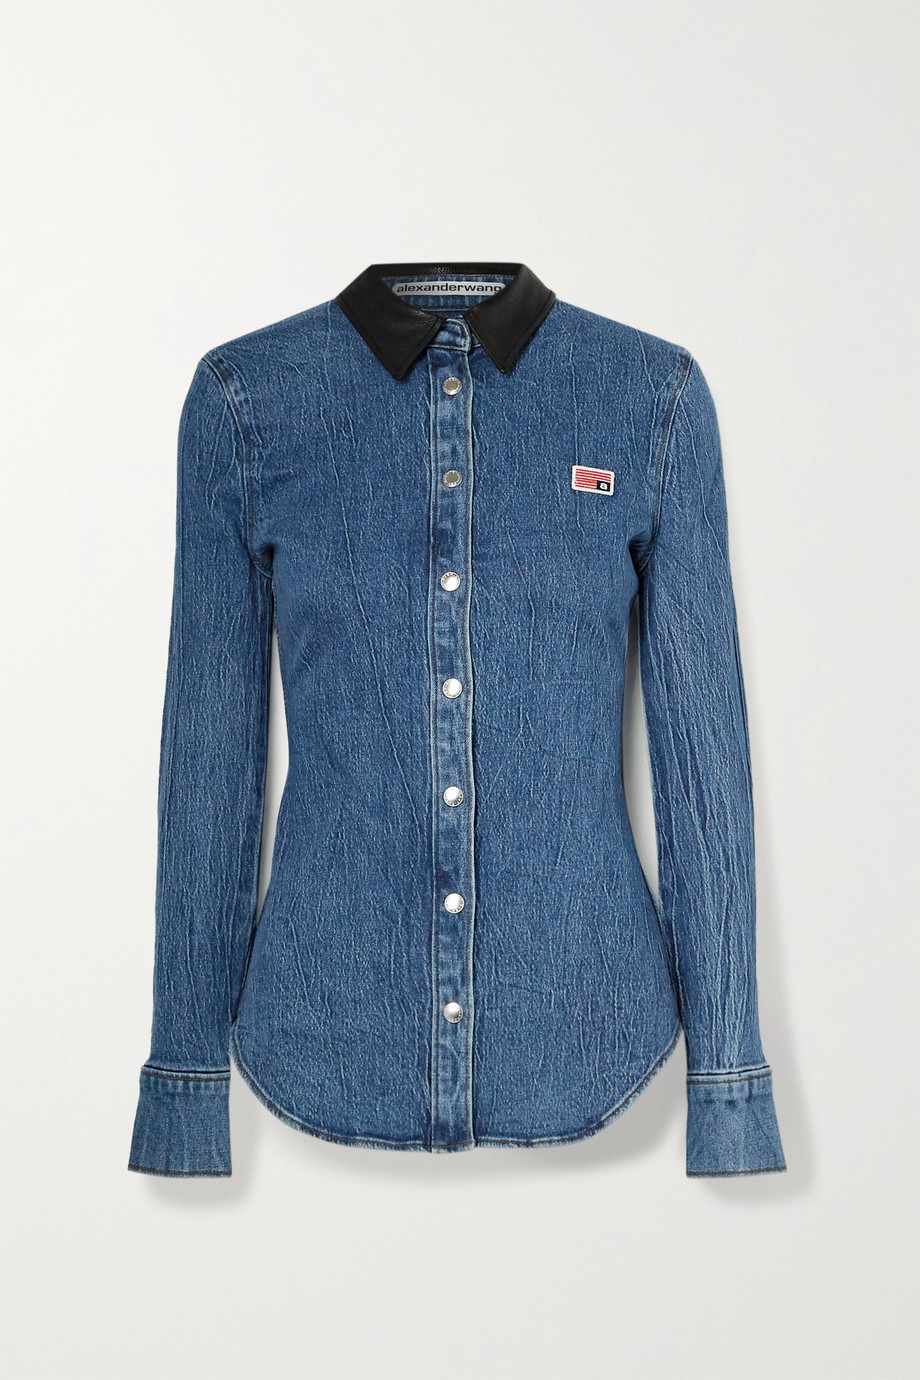 Alexander Wang Textured leather-trimmed denim shirt